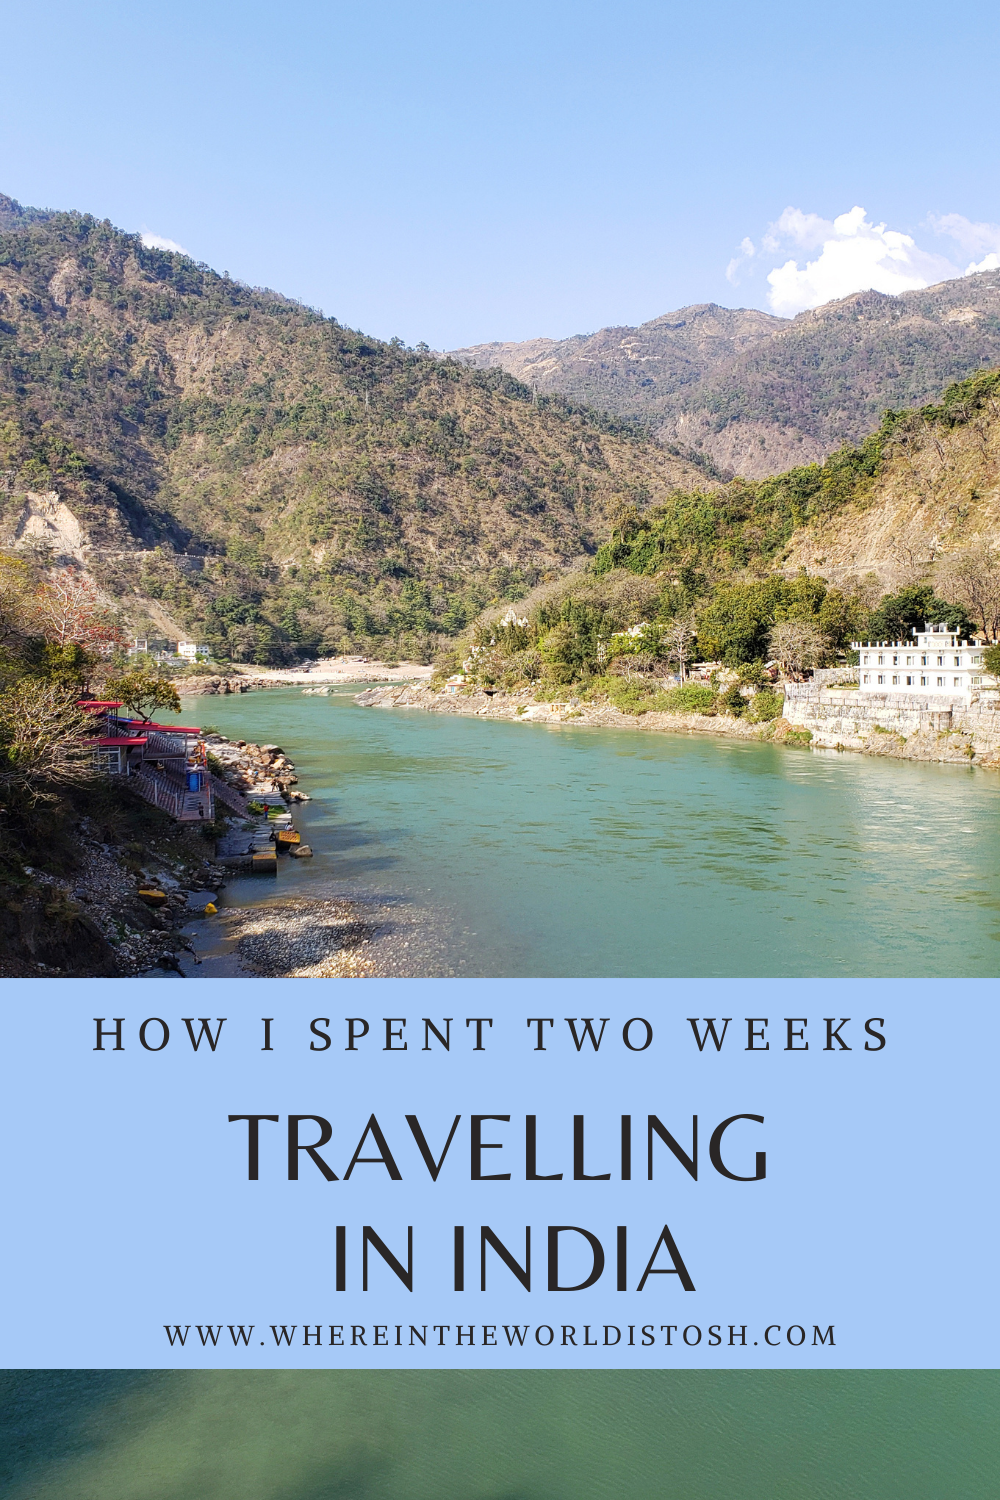 How I Spent Two Weeks Travelling In India